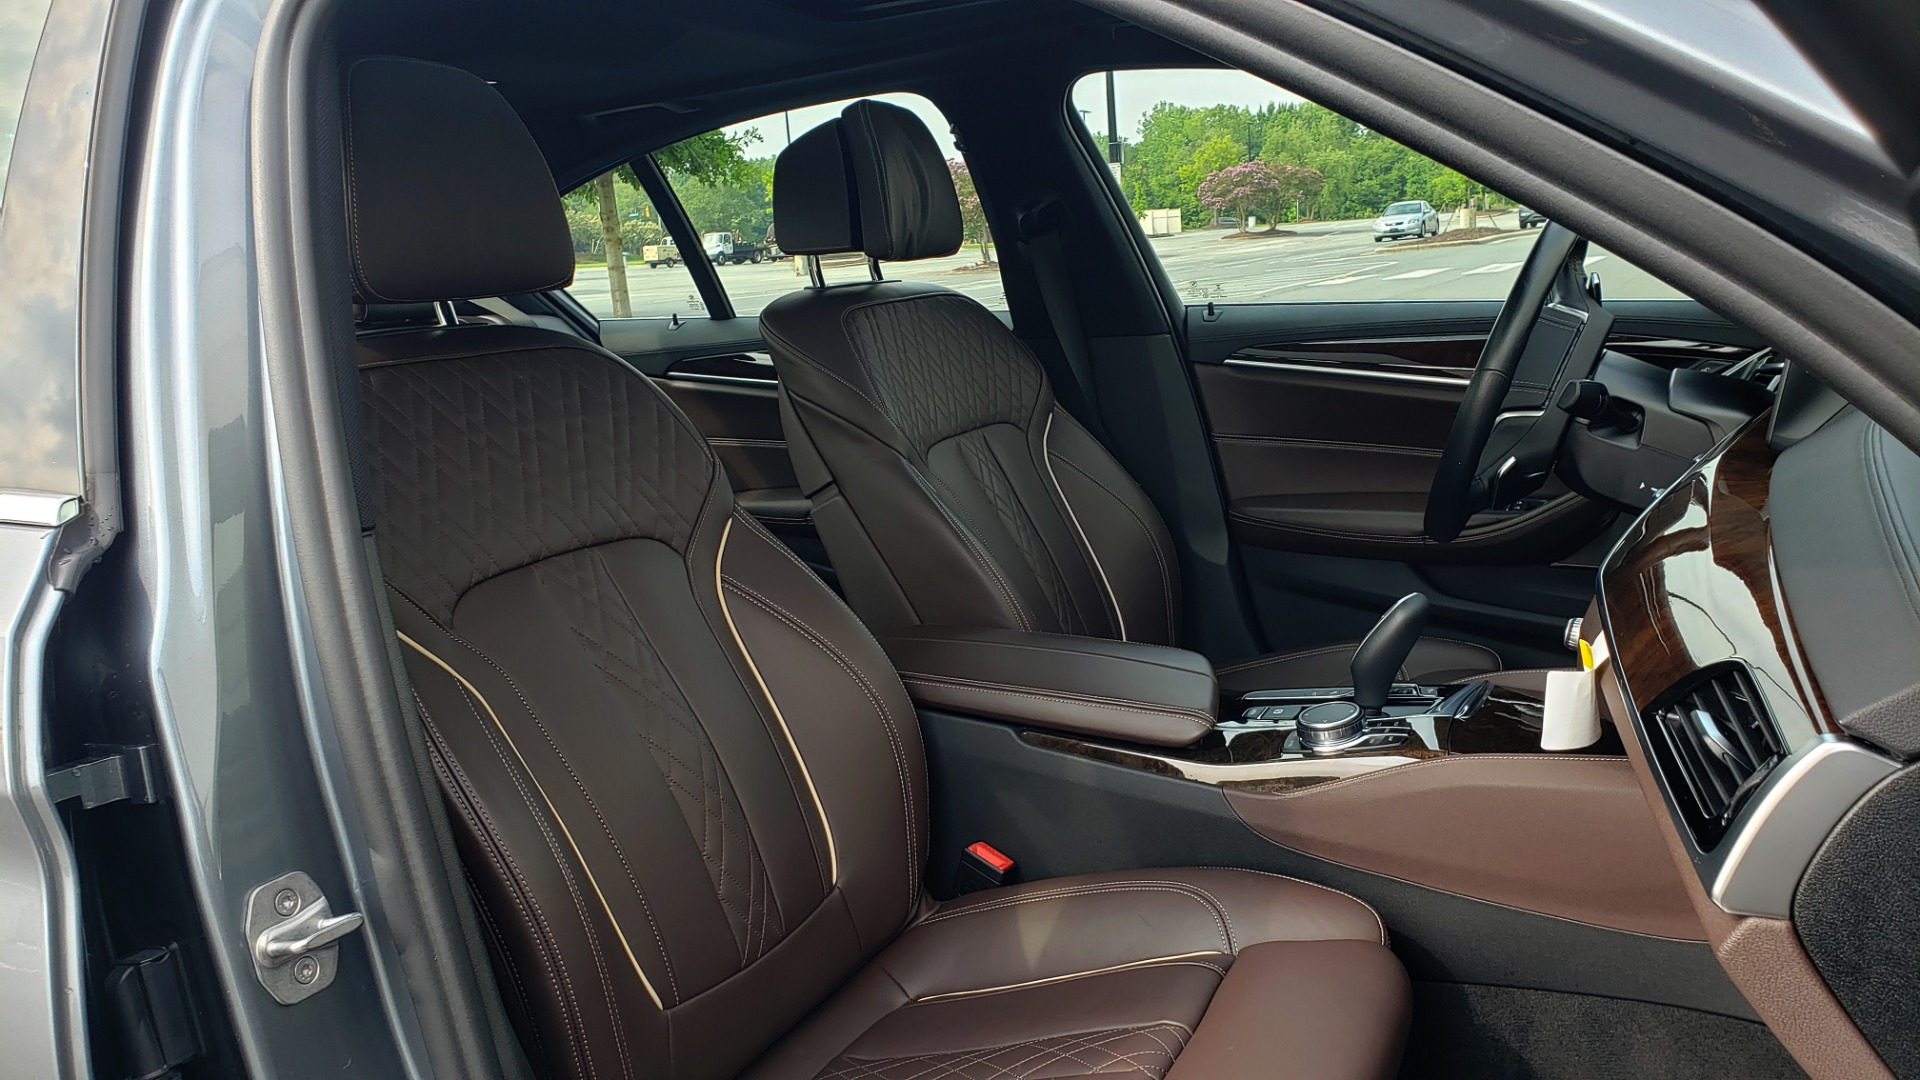 Used 2018 BMW 5 SERIES 540I XDRIVE PREMIUM / EXECUTIVE / LUXURY / H/K SND / REMOTE CONTROL PARKING for sale $40,995 at Formula Imports in Charlotte NC 28227 65